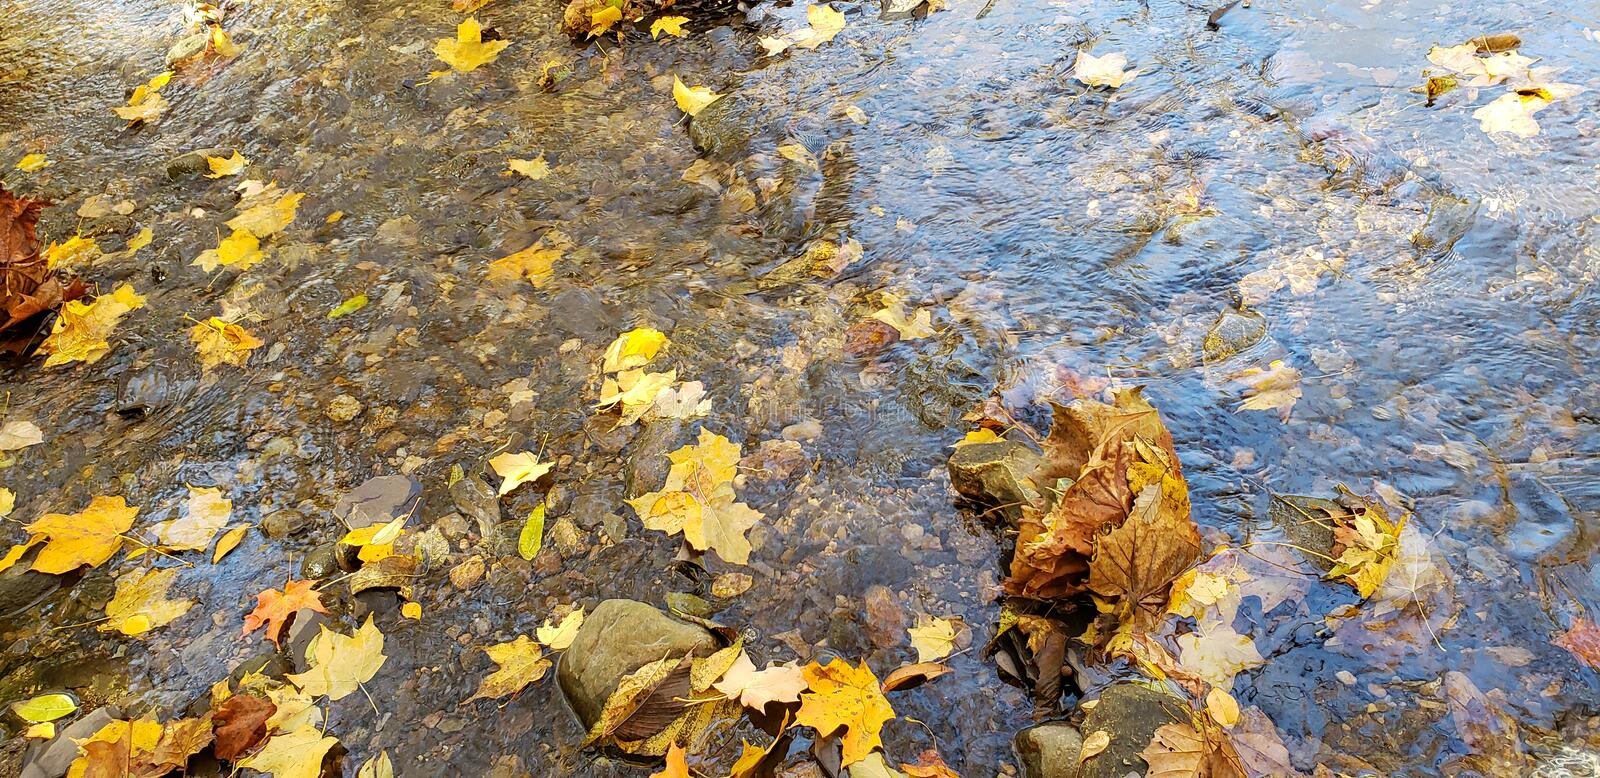 Autumn Leaves. Yellow, spring, river, water, nature, earth, fall, leaf, scenix, scenic, tranquil royalty free stock photography